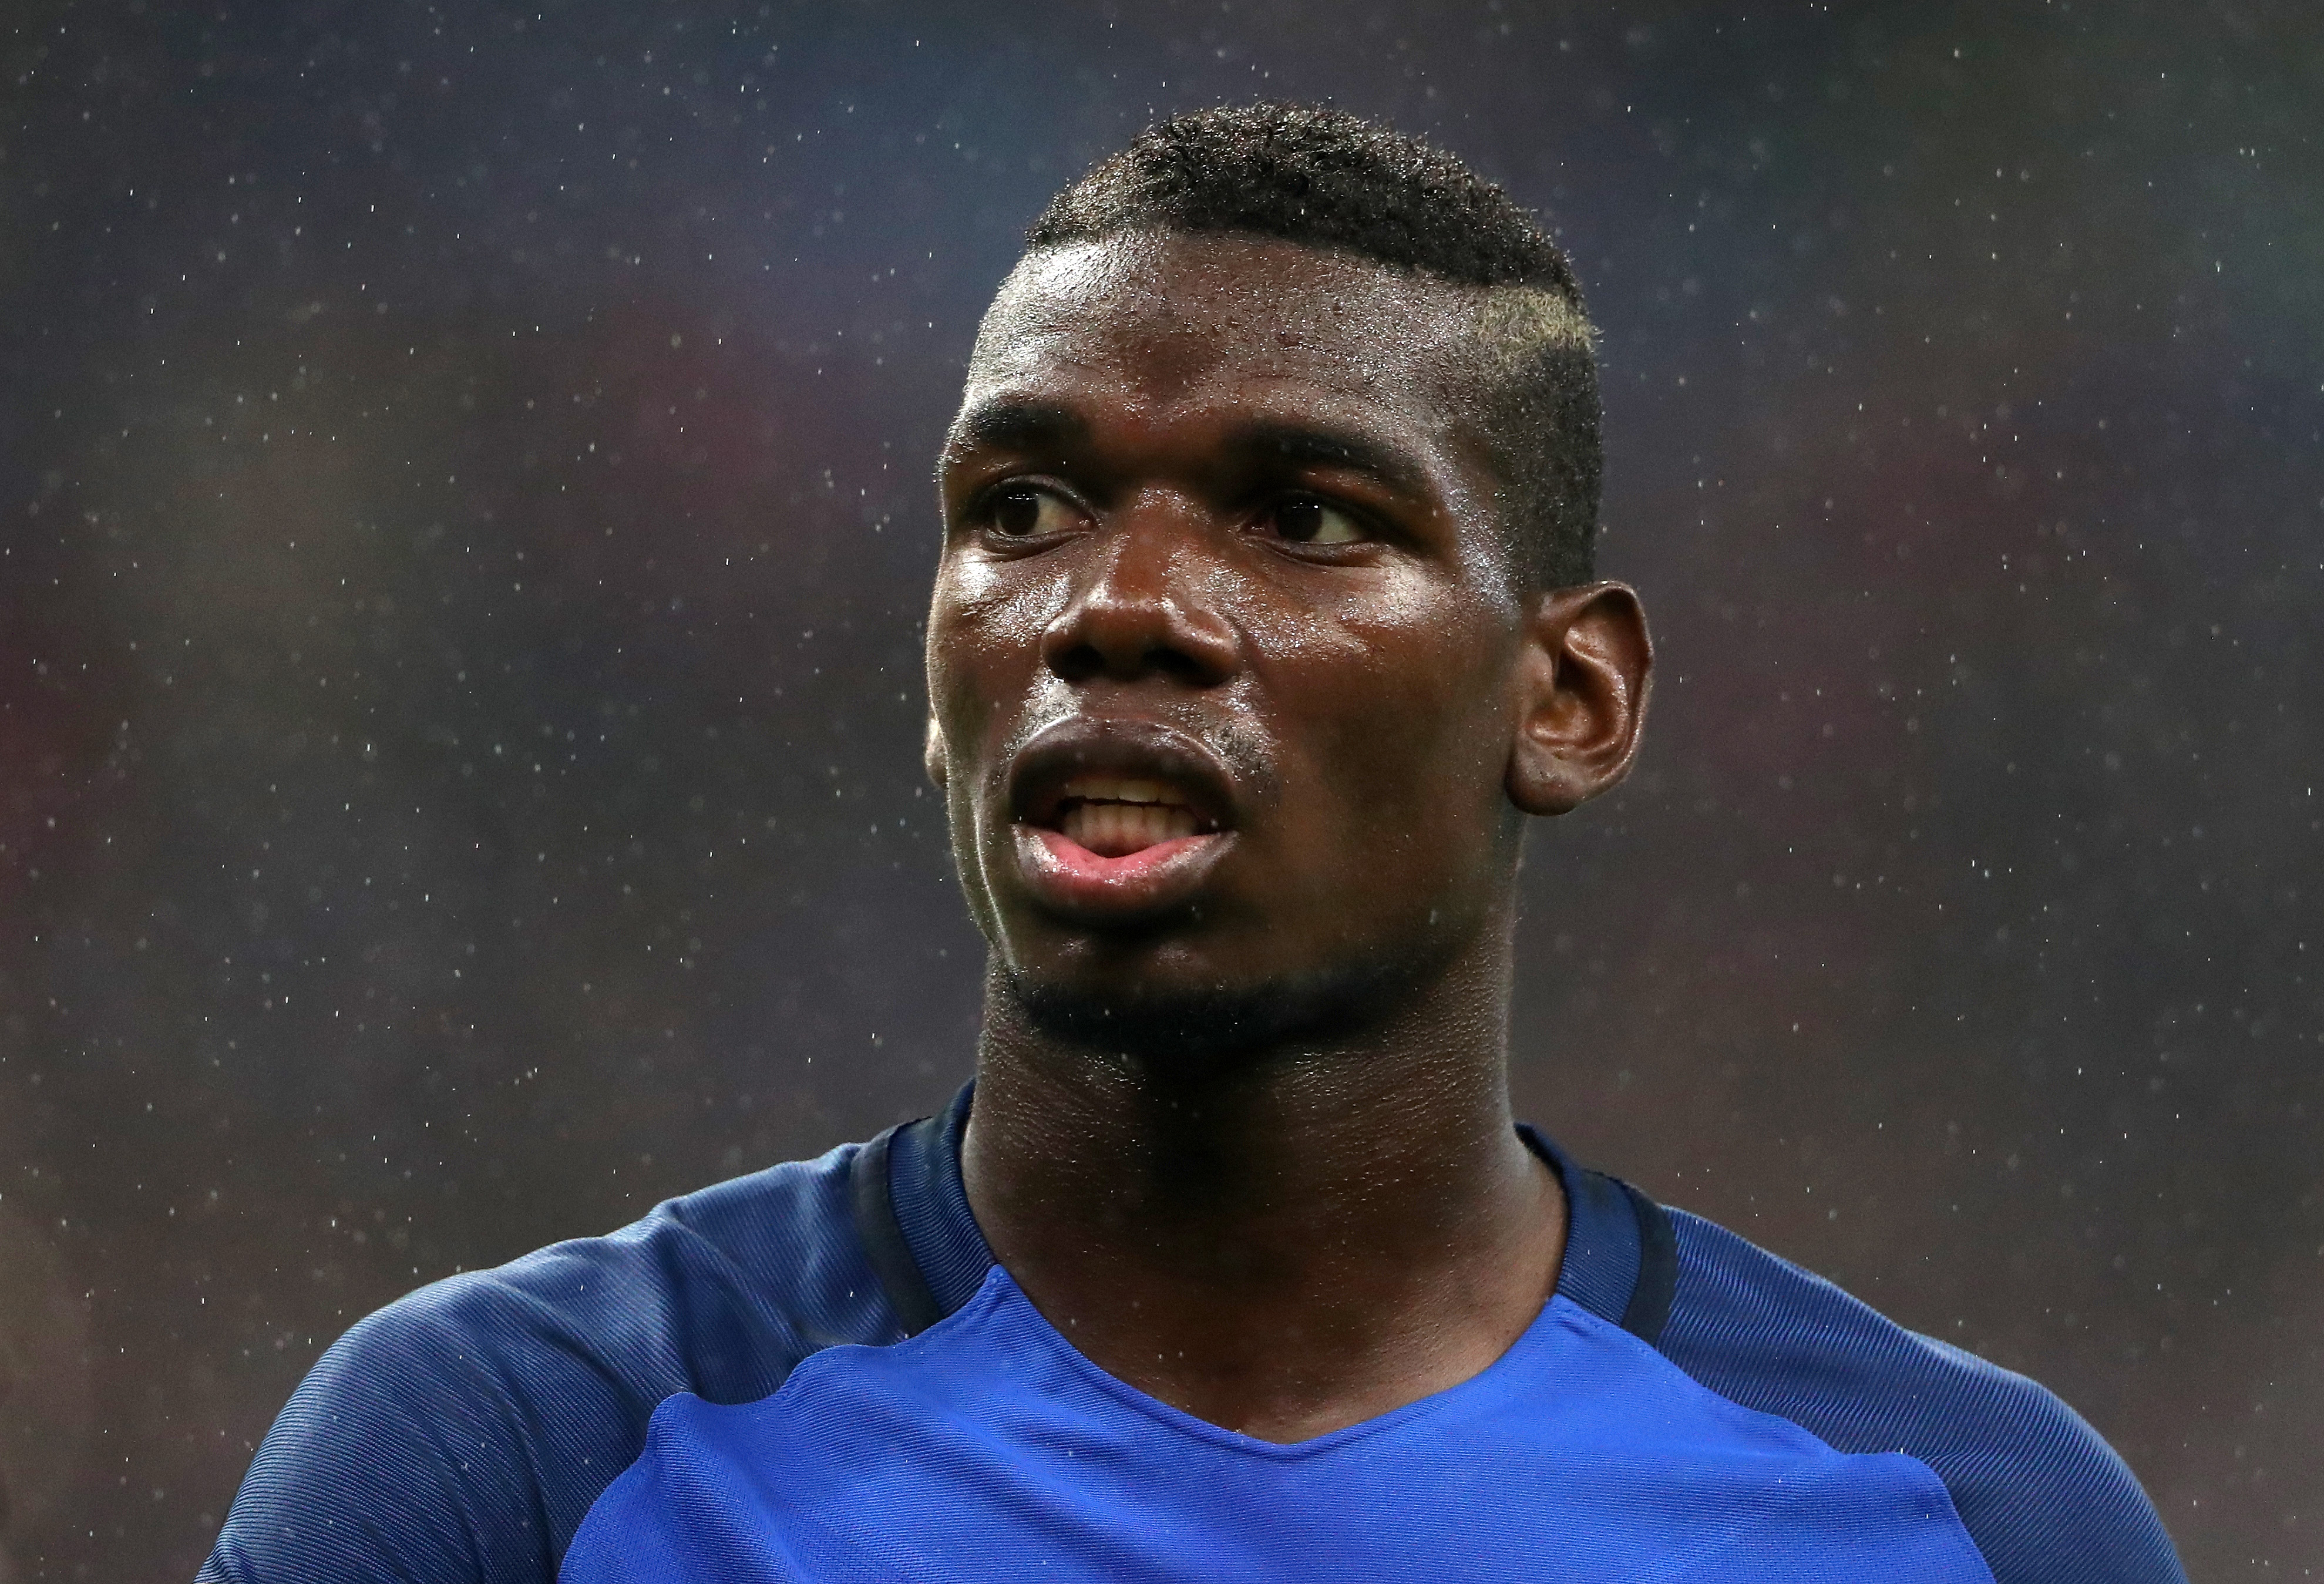 Paul Pogba would be the perfect Manchester United signing, says Paul Ince